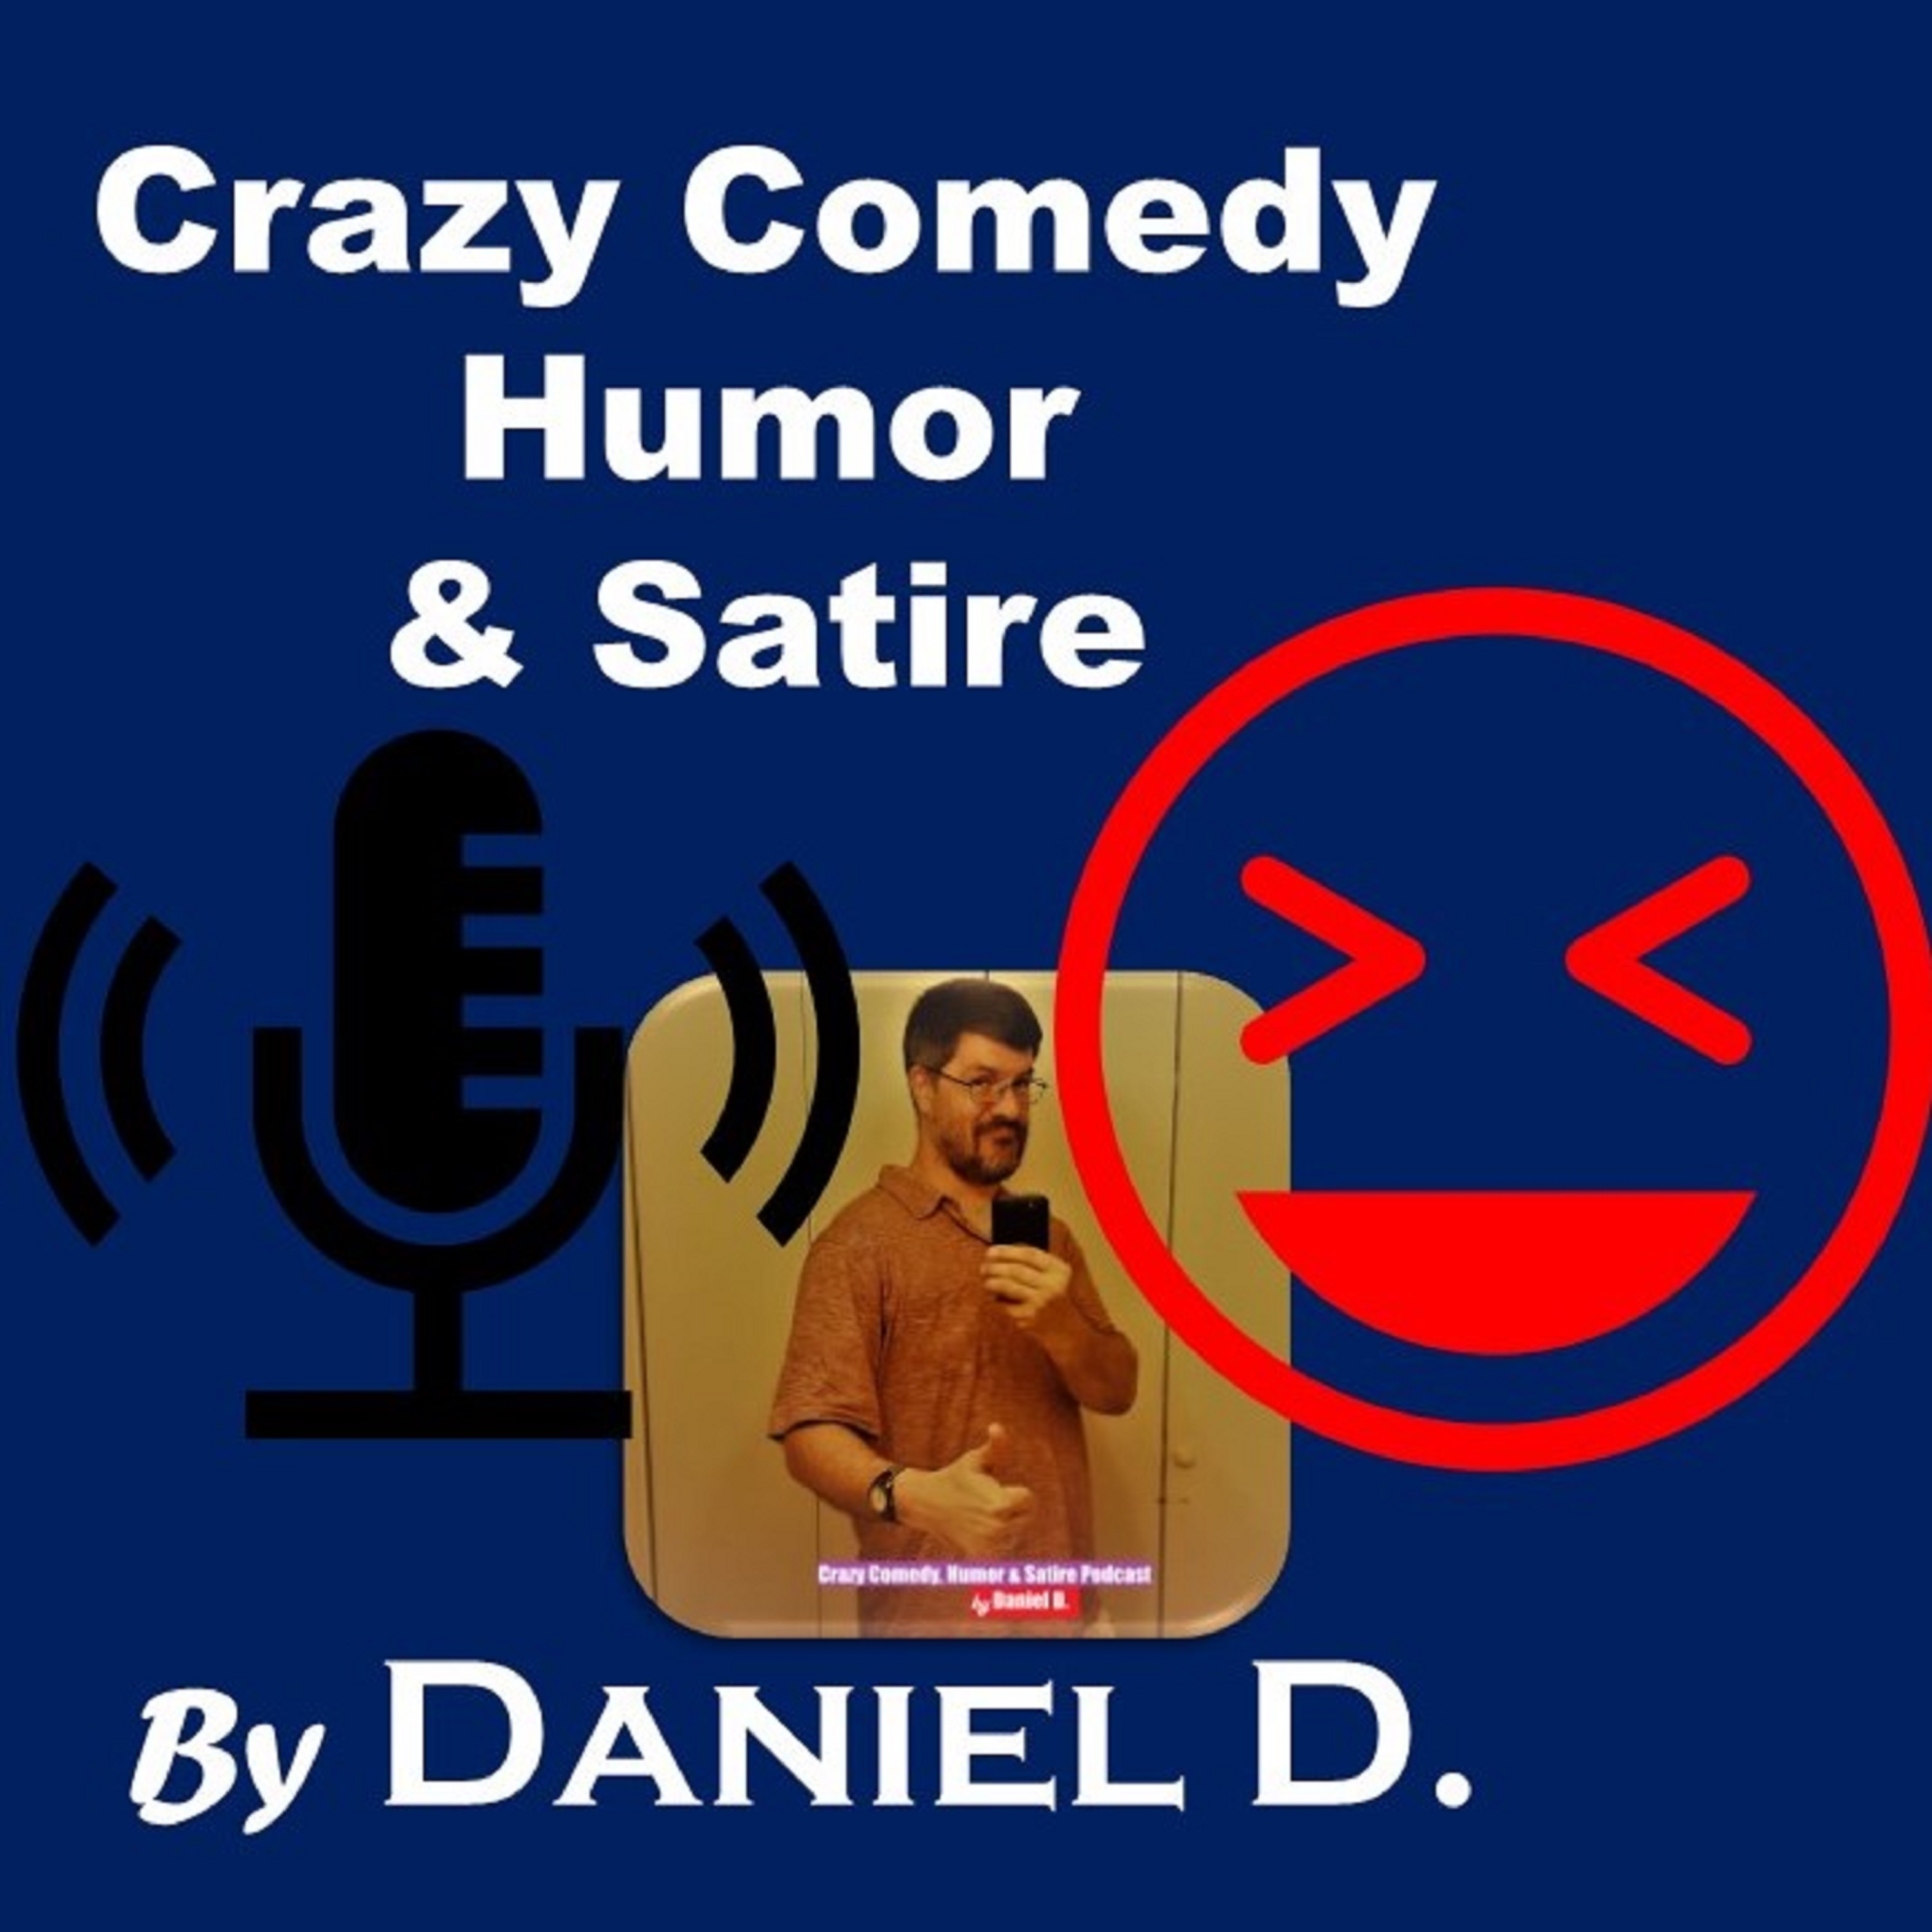 Artwork for Episode 23 of The Crazy Comedy, Humor & Satire Podcast